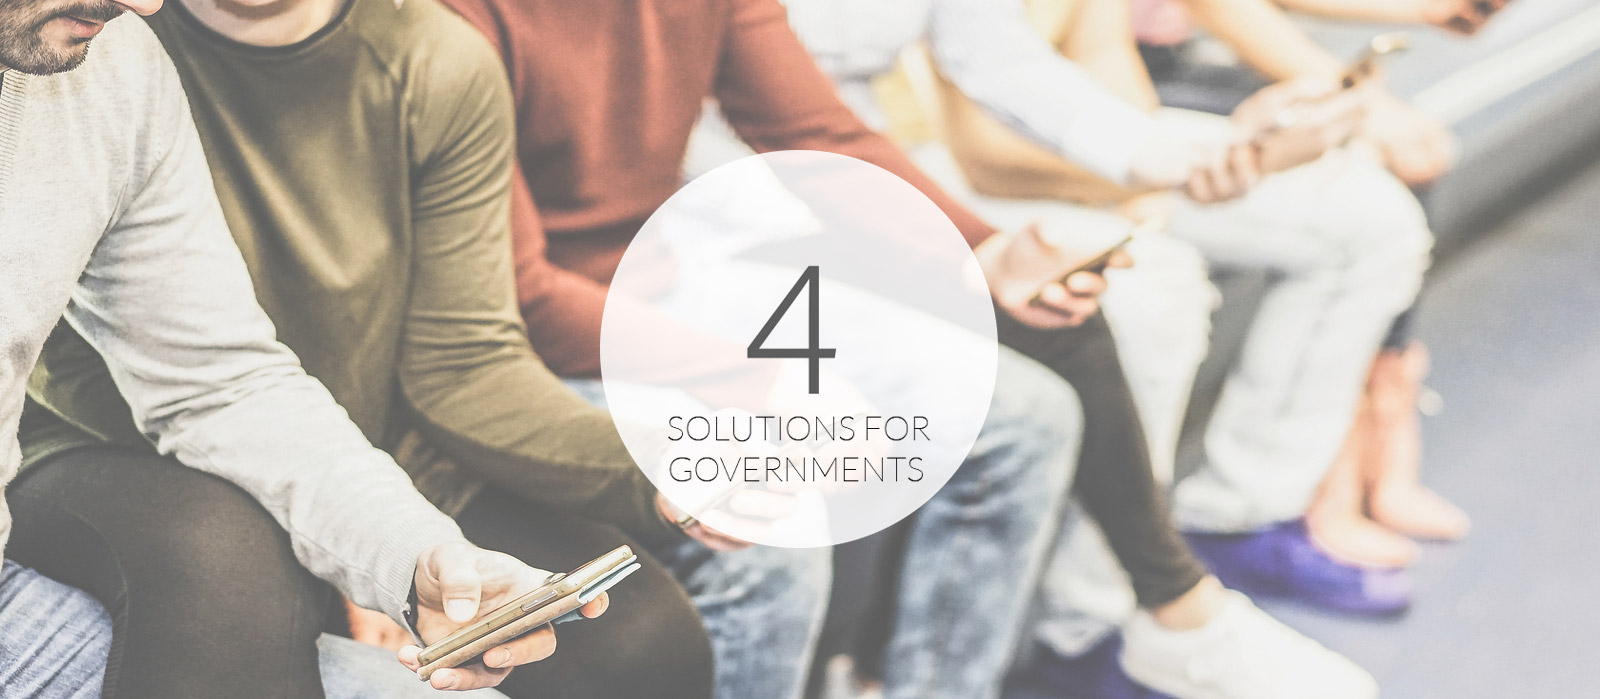 4 Solutions for Governments